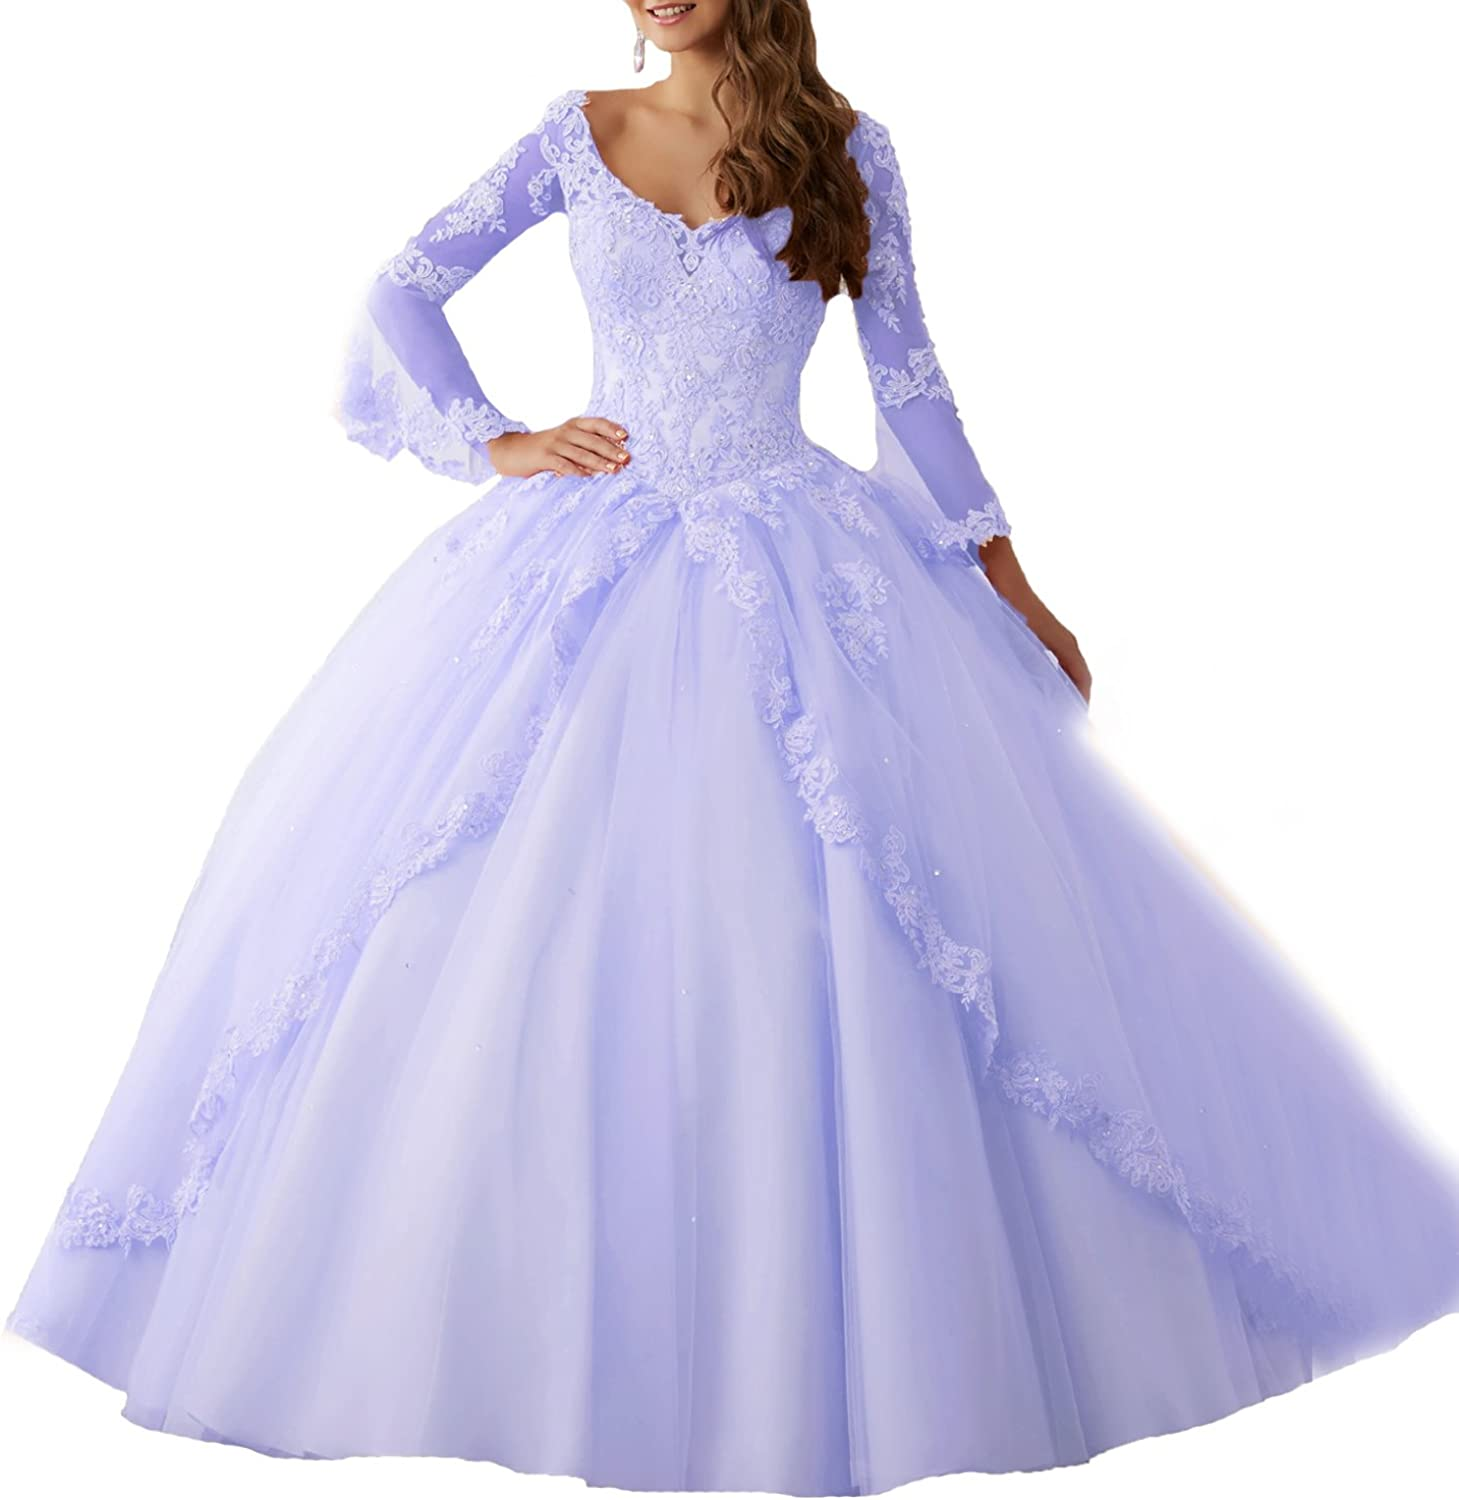 Beauty Bridal GirlsLong Sleeve Lace Quinceanera Dresses Formal Prom Dresses Ball